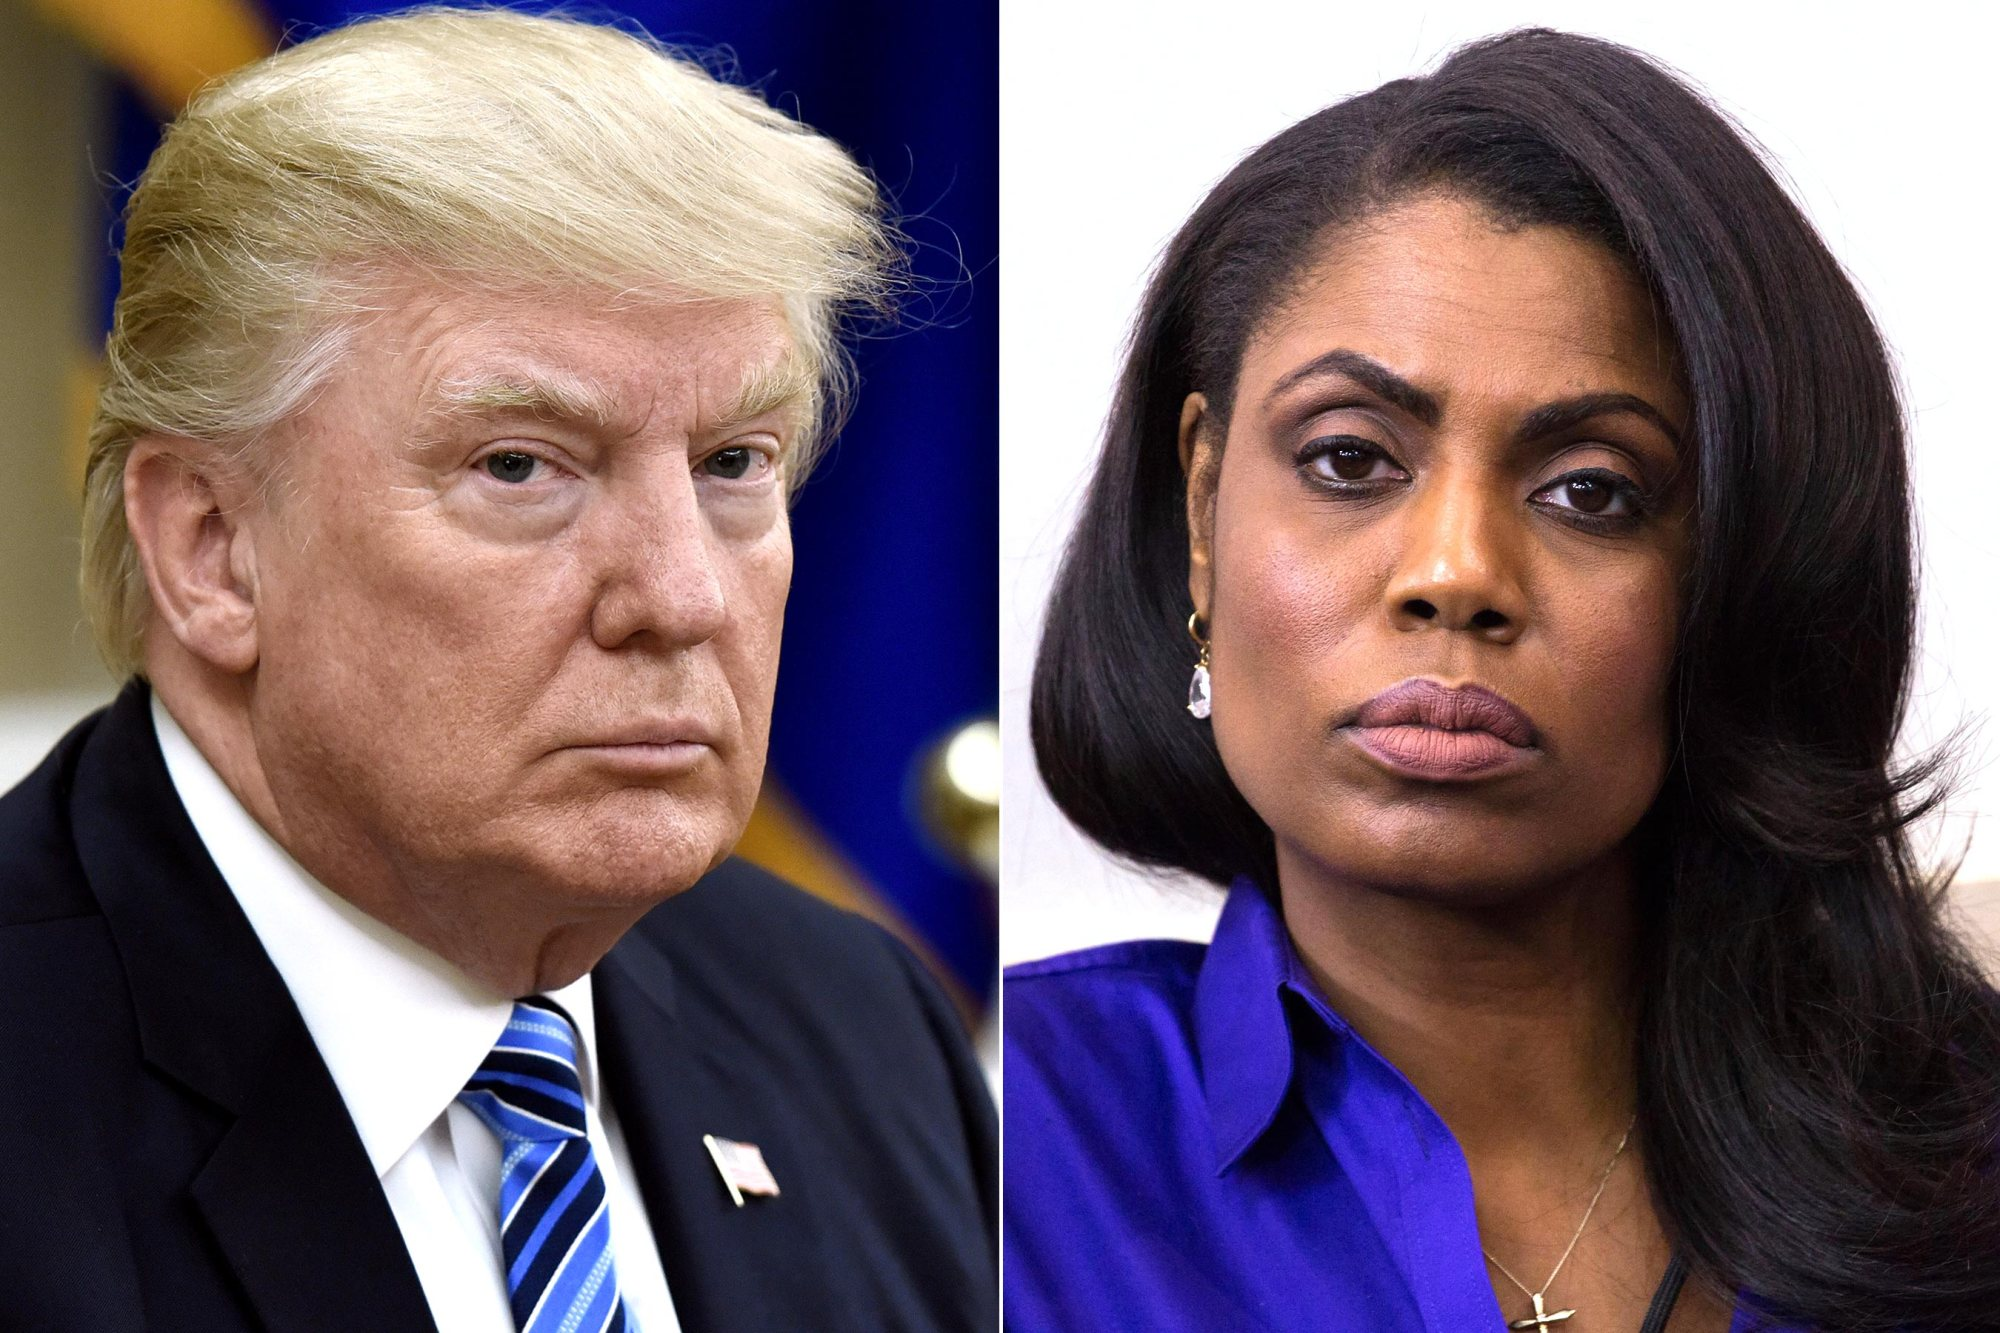 Trump campaign files confidentiality agreement complaint against Omarosa